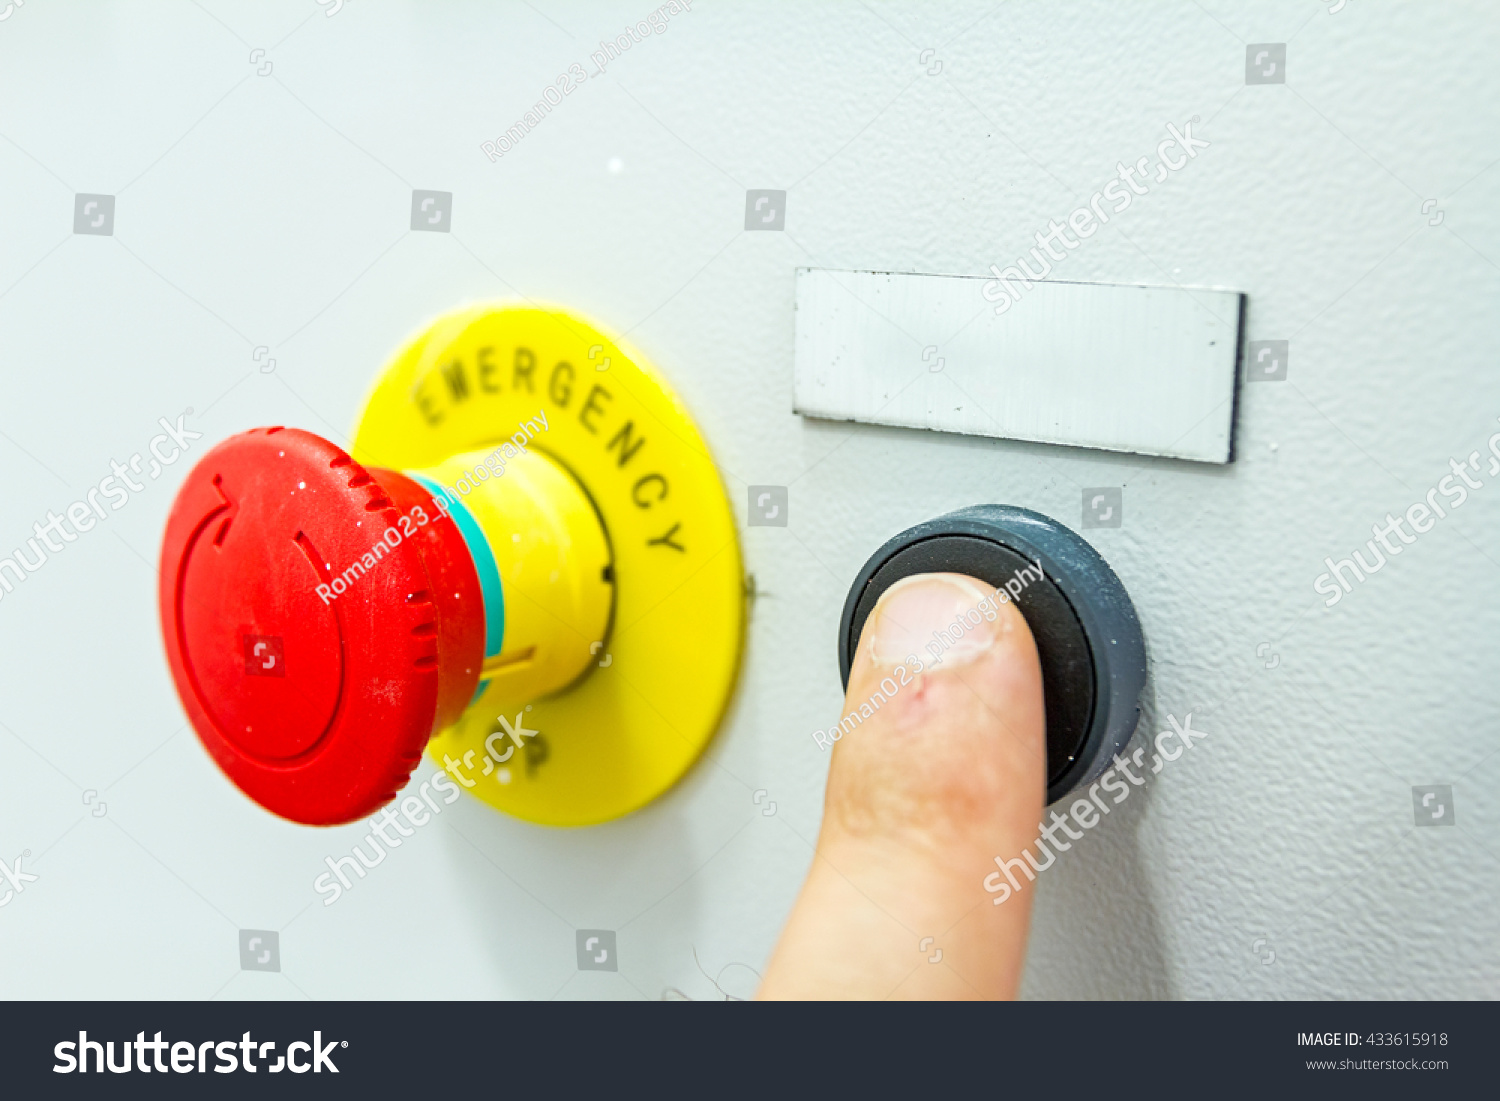 Reset Fuse Box Emergency Red Shutdown Stock Photo Edit Now Handle With Panic Button